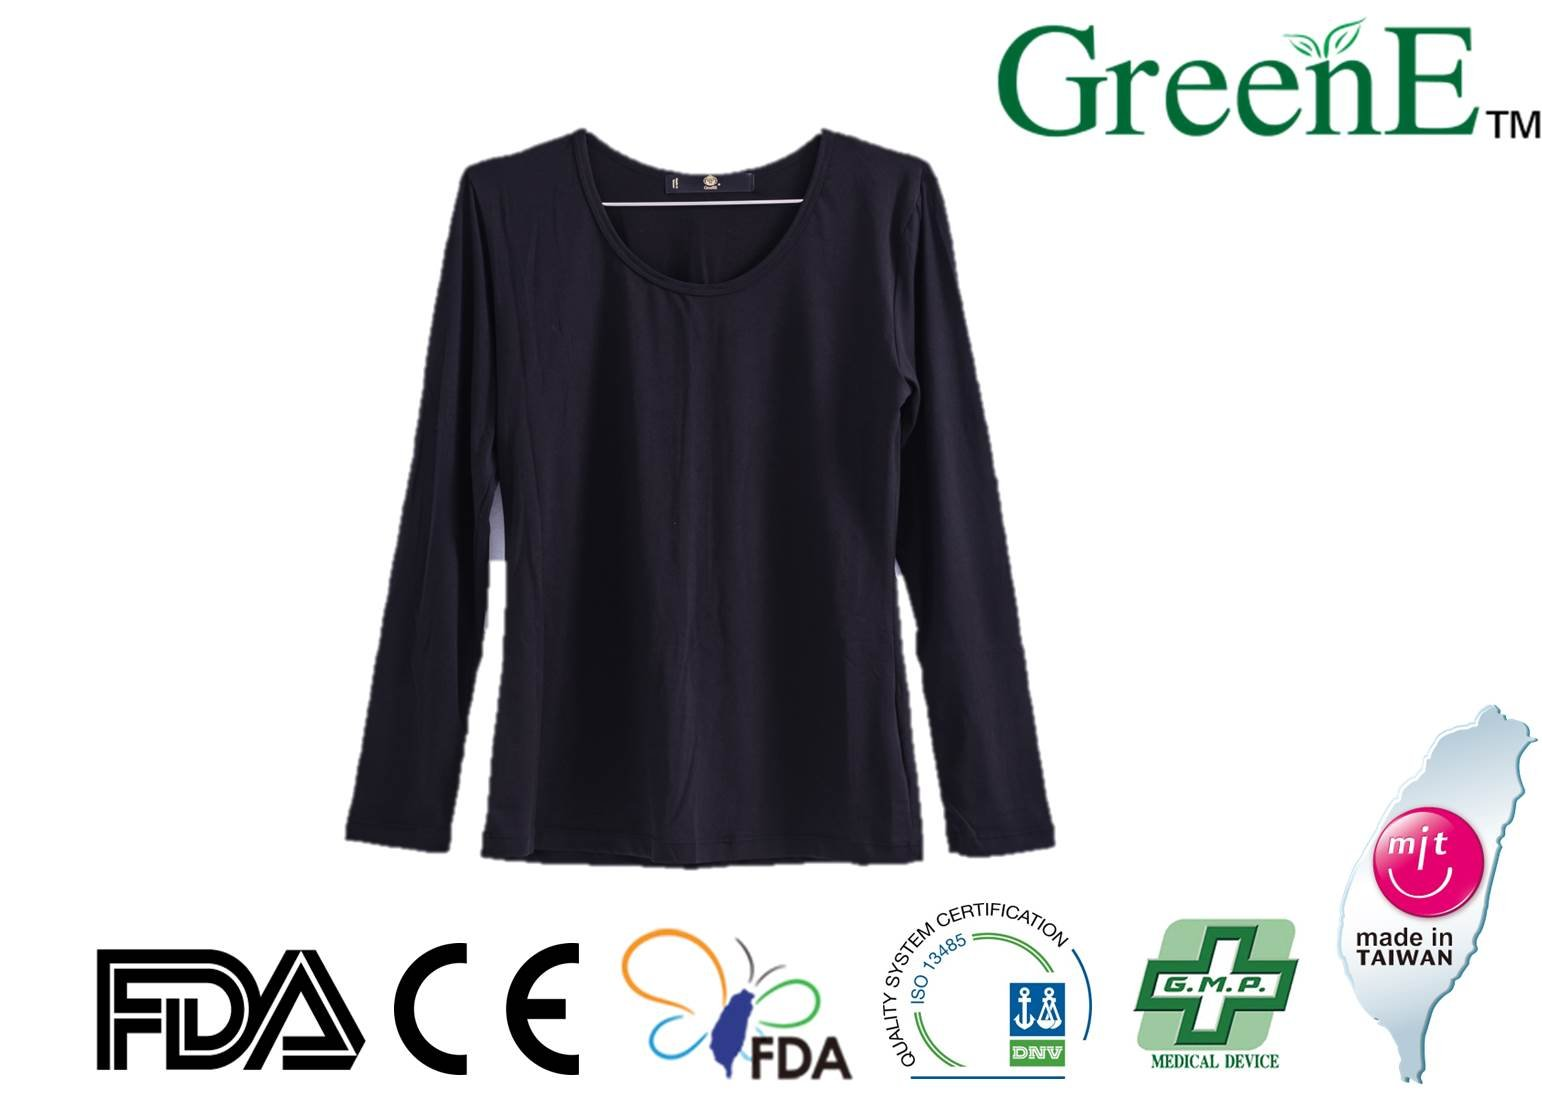 GreenE Long Sleeve Shirt Women's Funtion Warm Fitness Exercise Color Black Size L